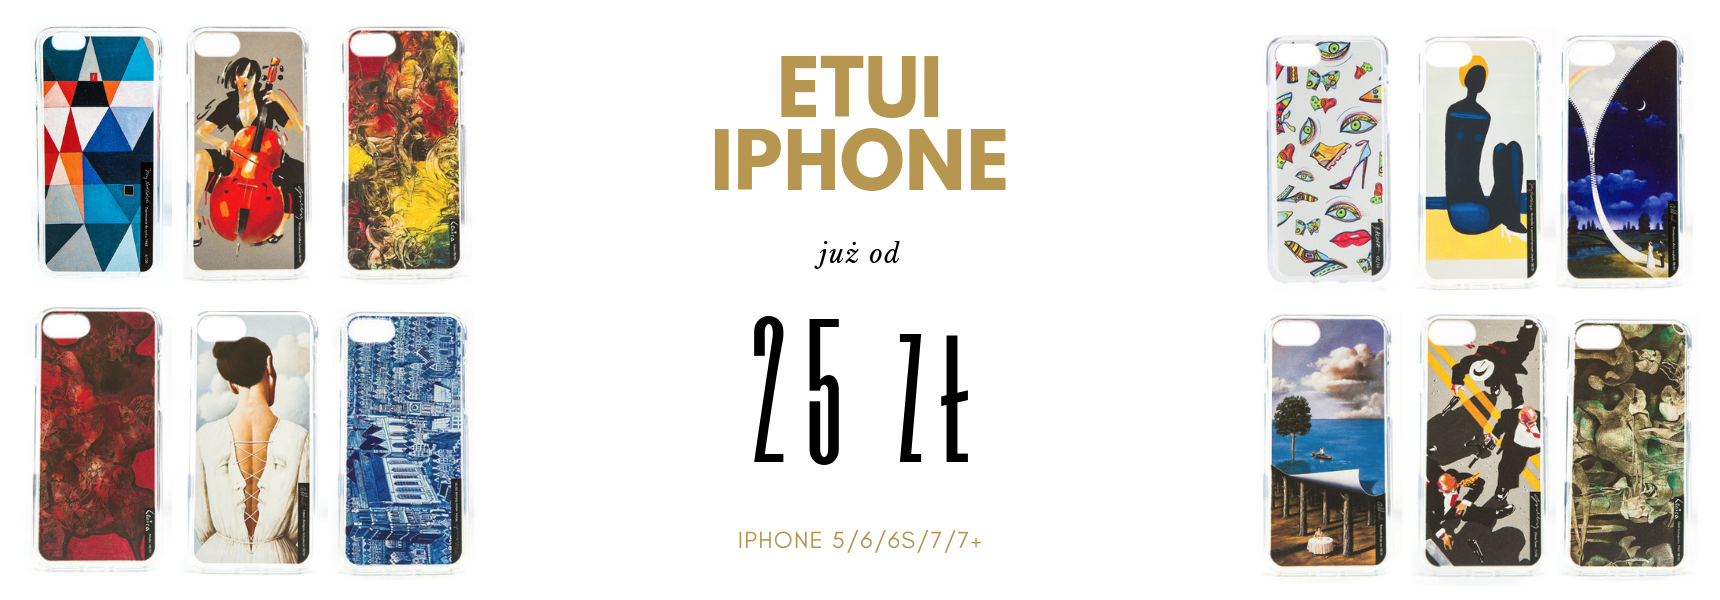 Etui iPhone 5/6/6s/7/7+